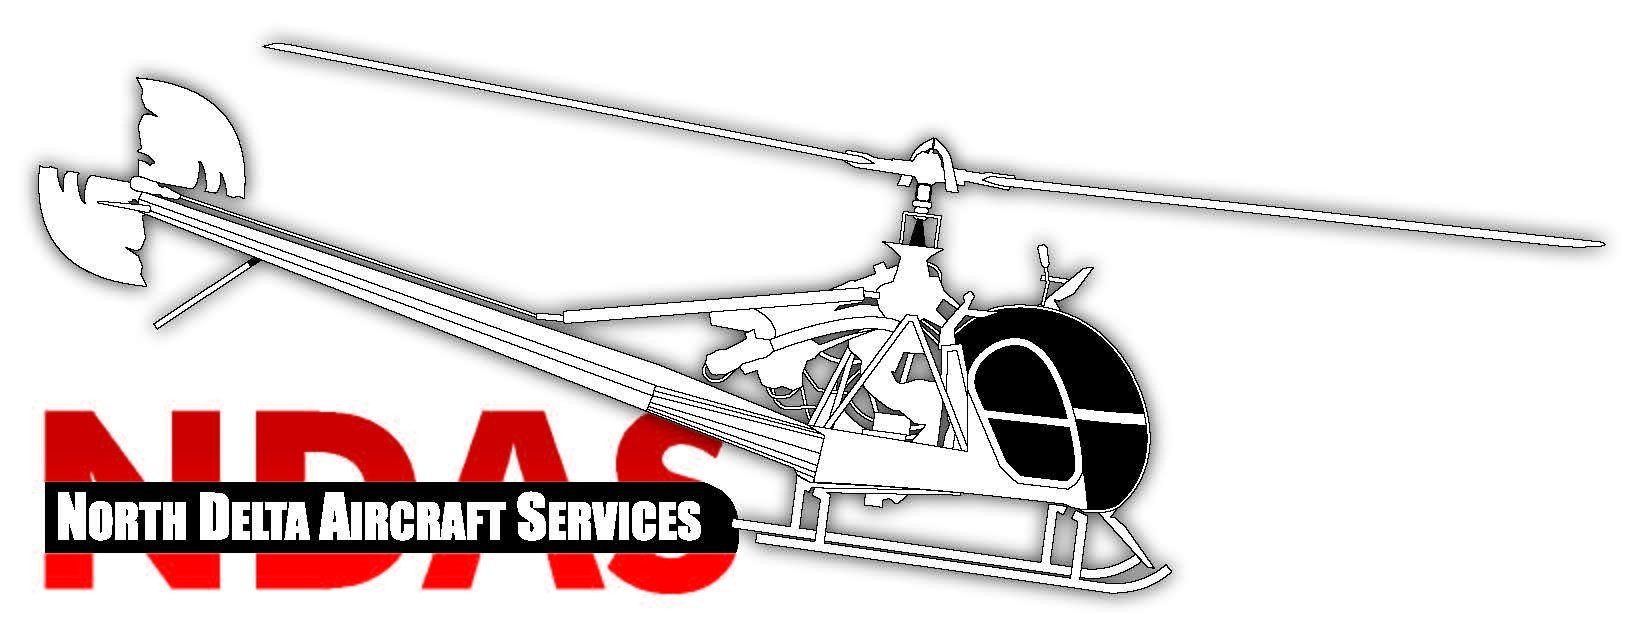 North Delta Aircraft Services Ltd.